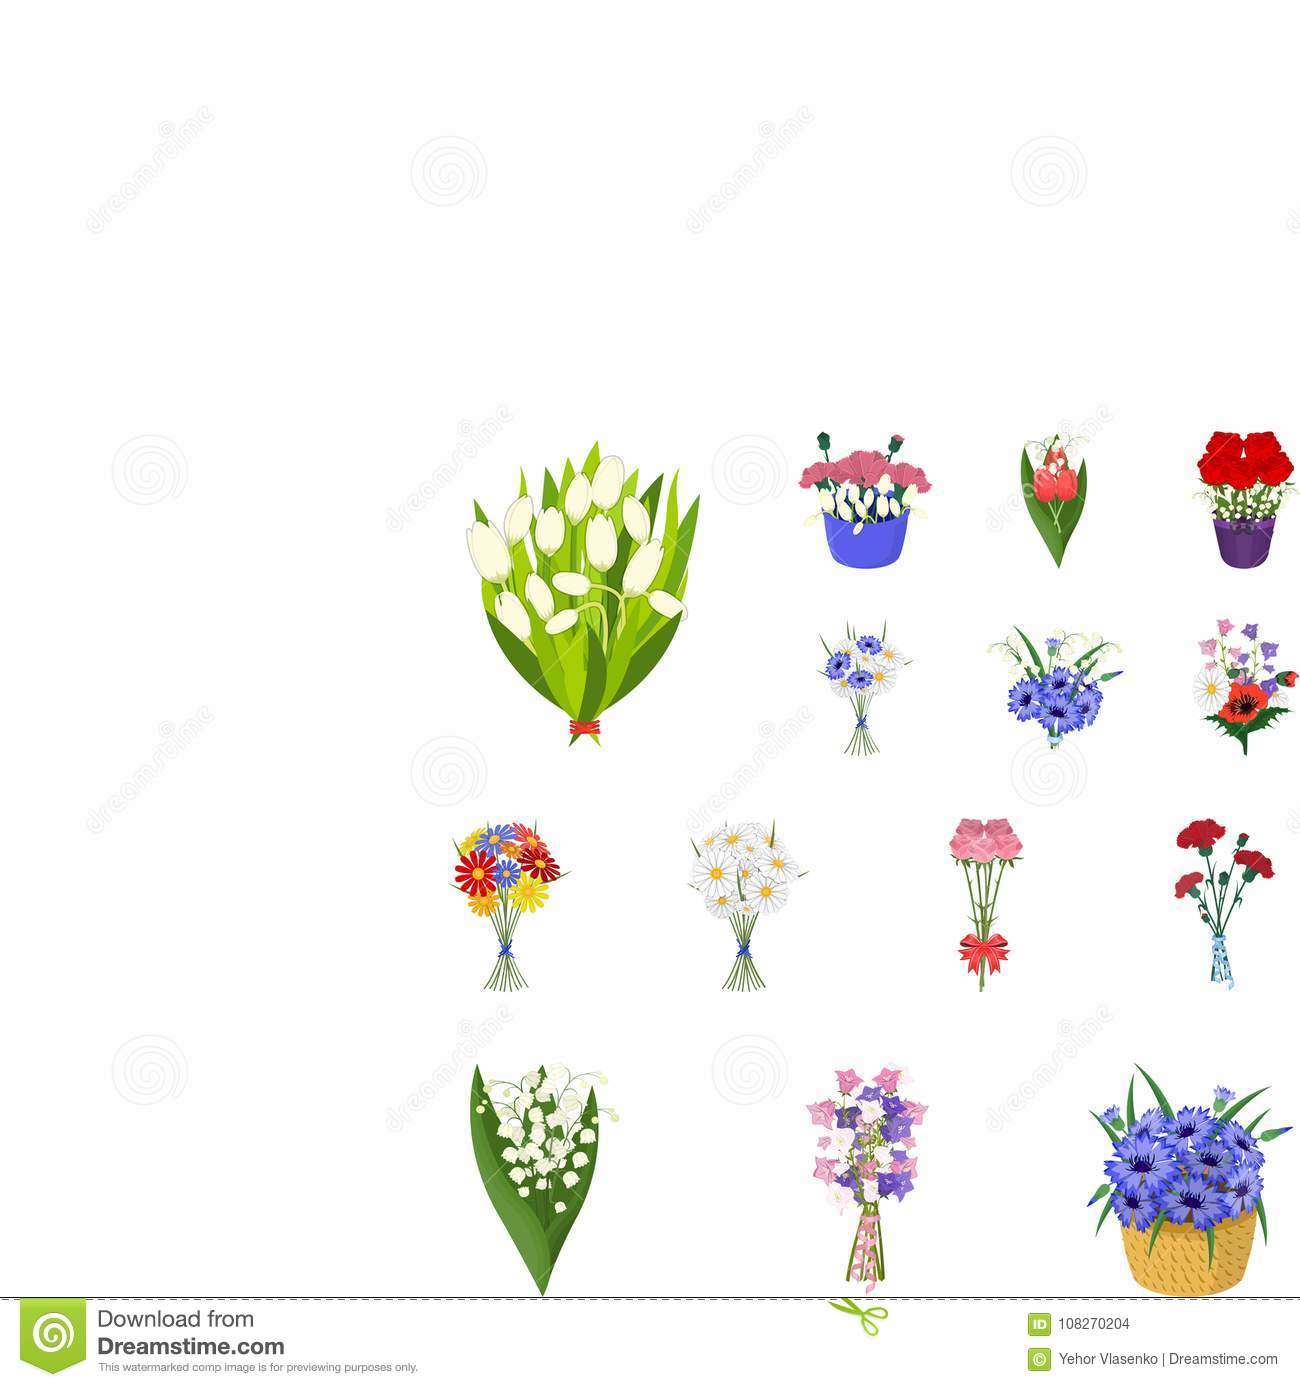 A bouquet of fresh flowers cartoon icons in set collection for a bouquet of fresh flowers cartoon icons in set collection for design various bouquets vector symbol stock web izmirmasajfo